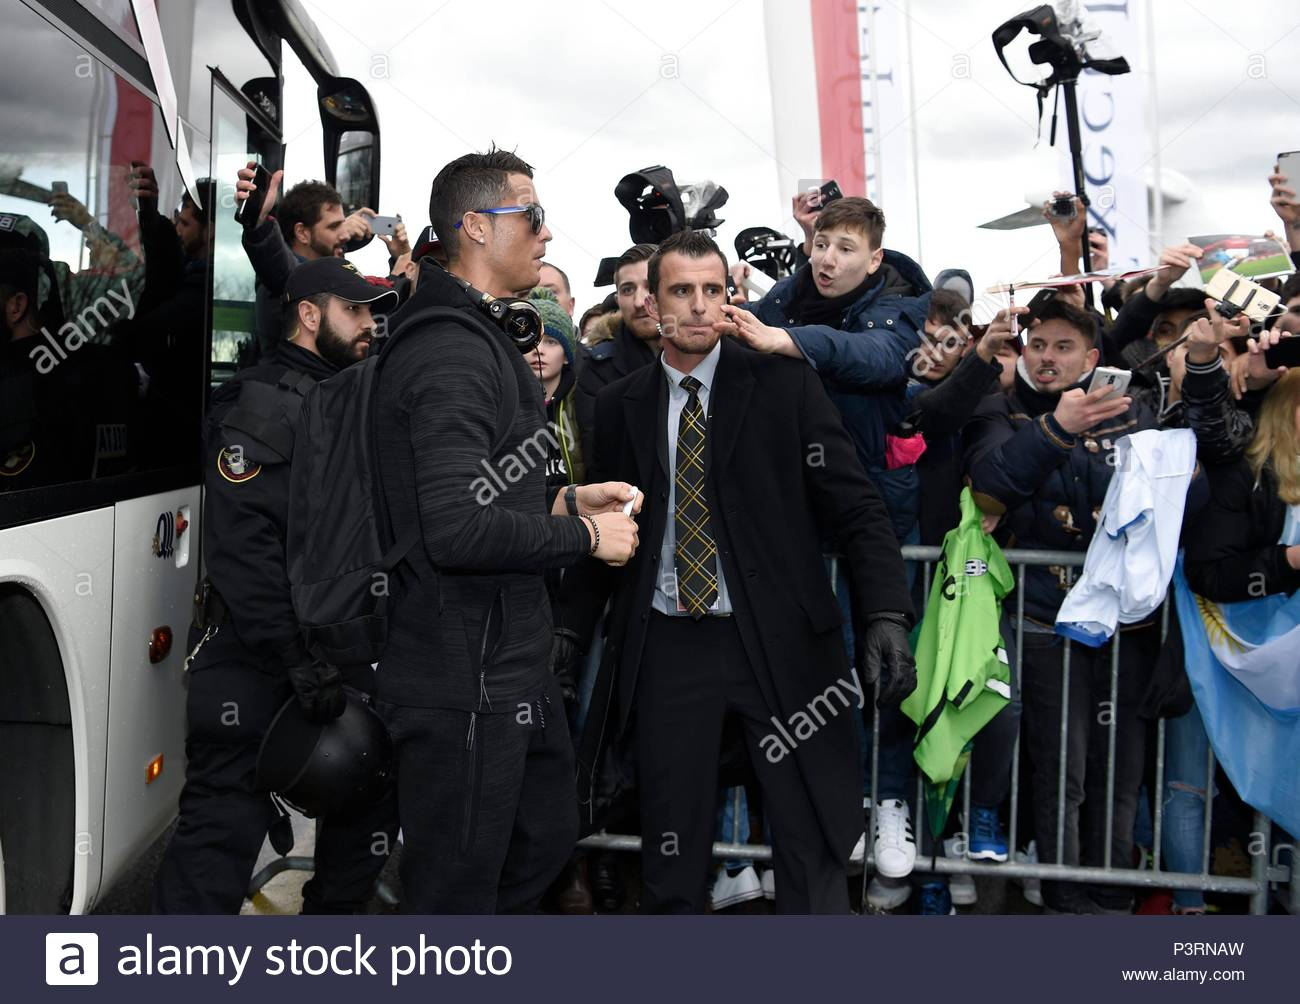 Cristiano Ronaldo. 11JAN2016 Soccer stars arriving at Zurich airport for the FIFA Ballon d'Or Gala 2015 at the Kongresshalle in Zurich. - Stock Image